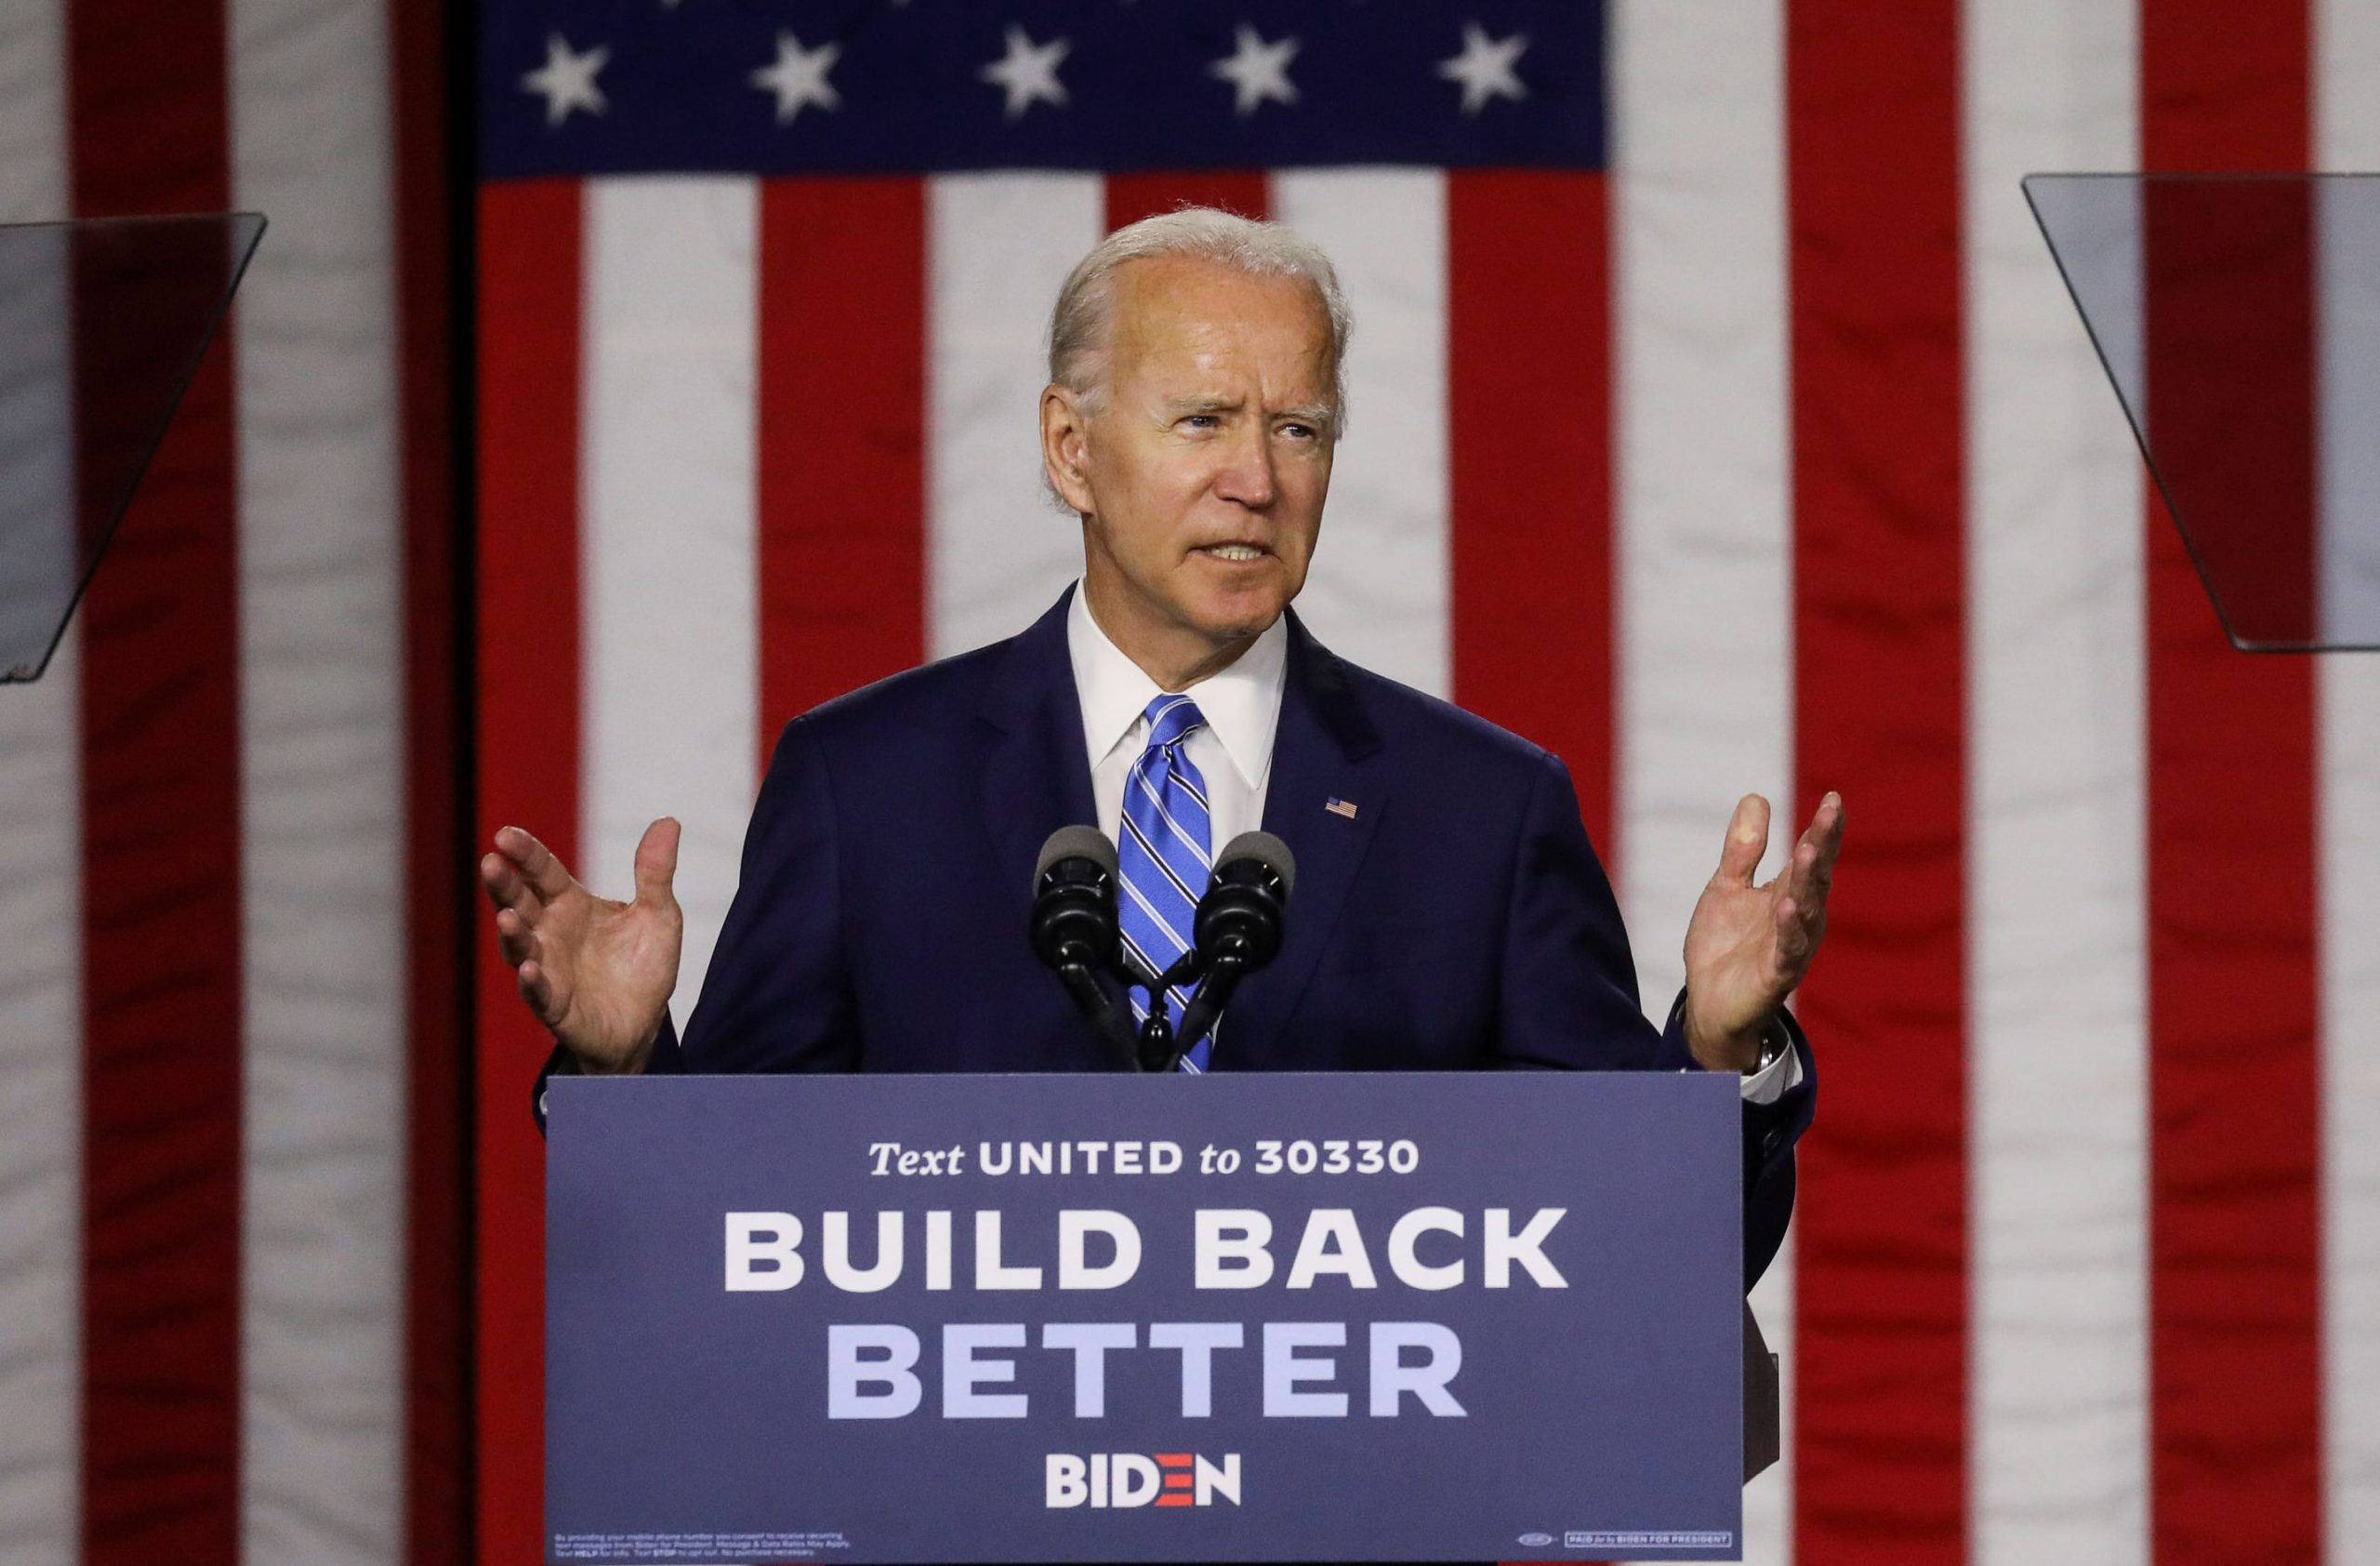 Joe Biden Unveils the Fourth Phase of his Build Back Better Plan: Strengthening Racial Equity